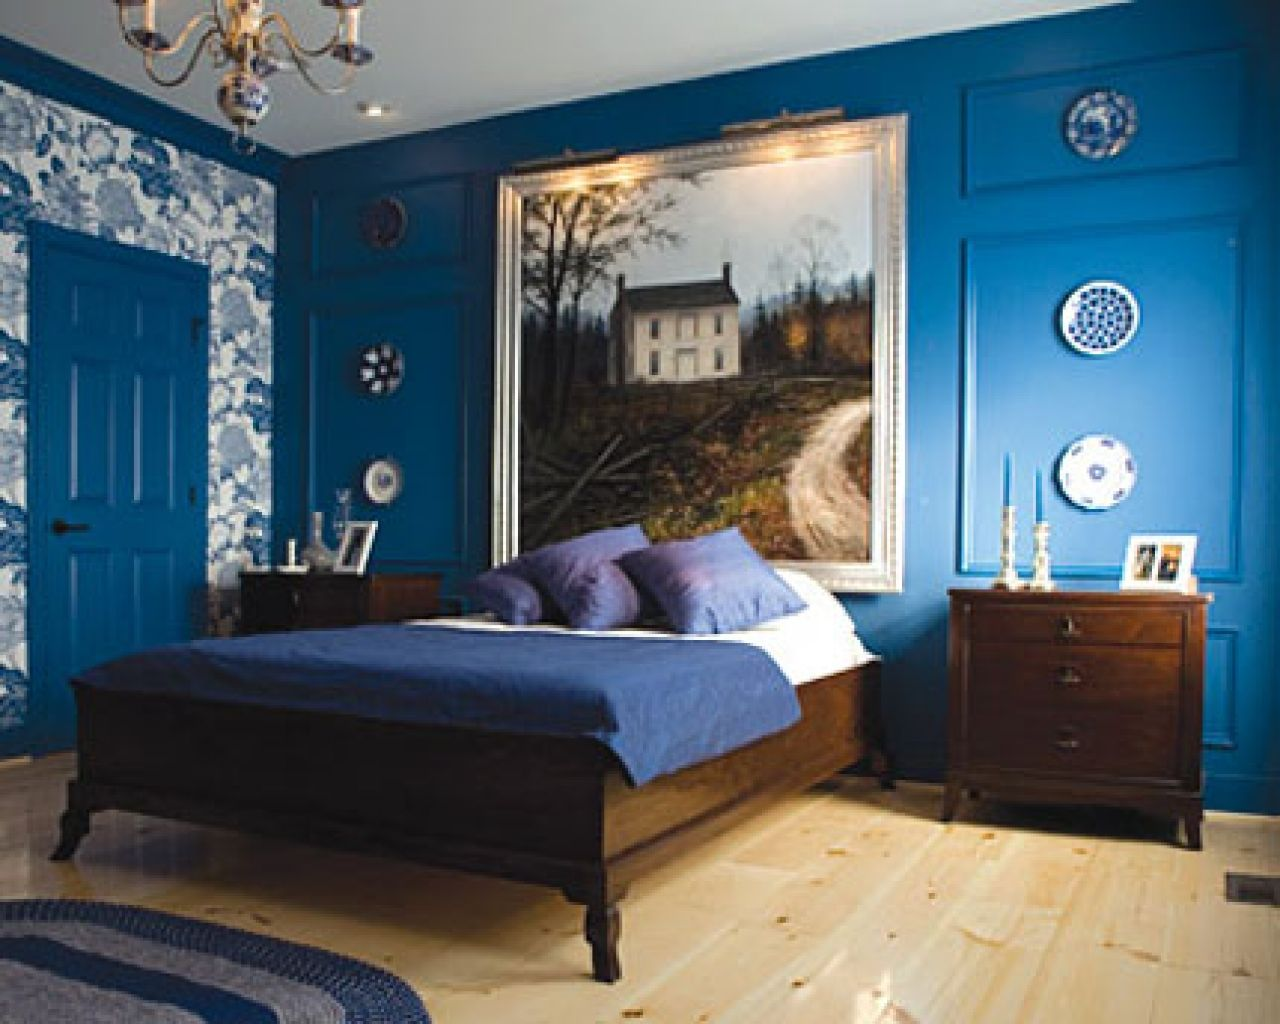 Bedroom painting design ideas pretty natural bedroom paint for Wall designs with paint for a bedroom